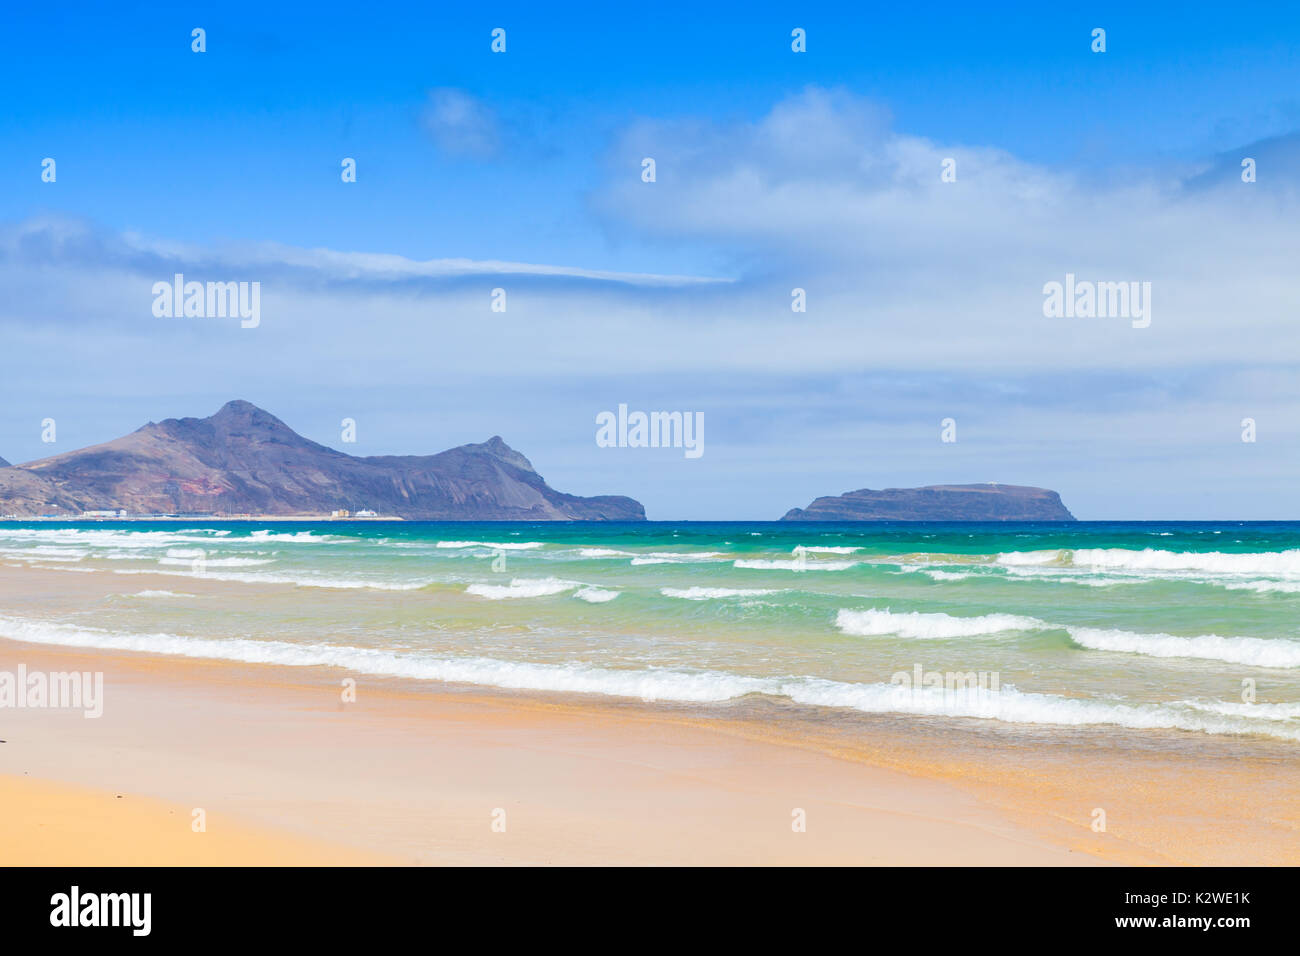 Sandy beach landscape of the island of Porto Santo in the Madeira archipelago, Portugal - Stock Image